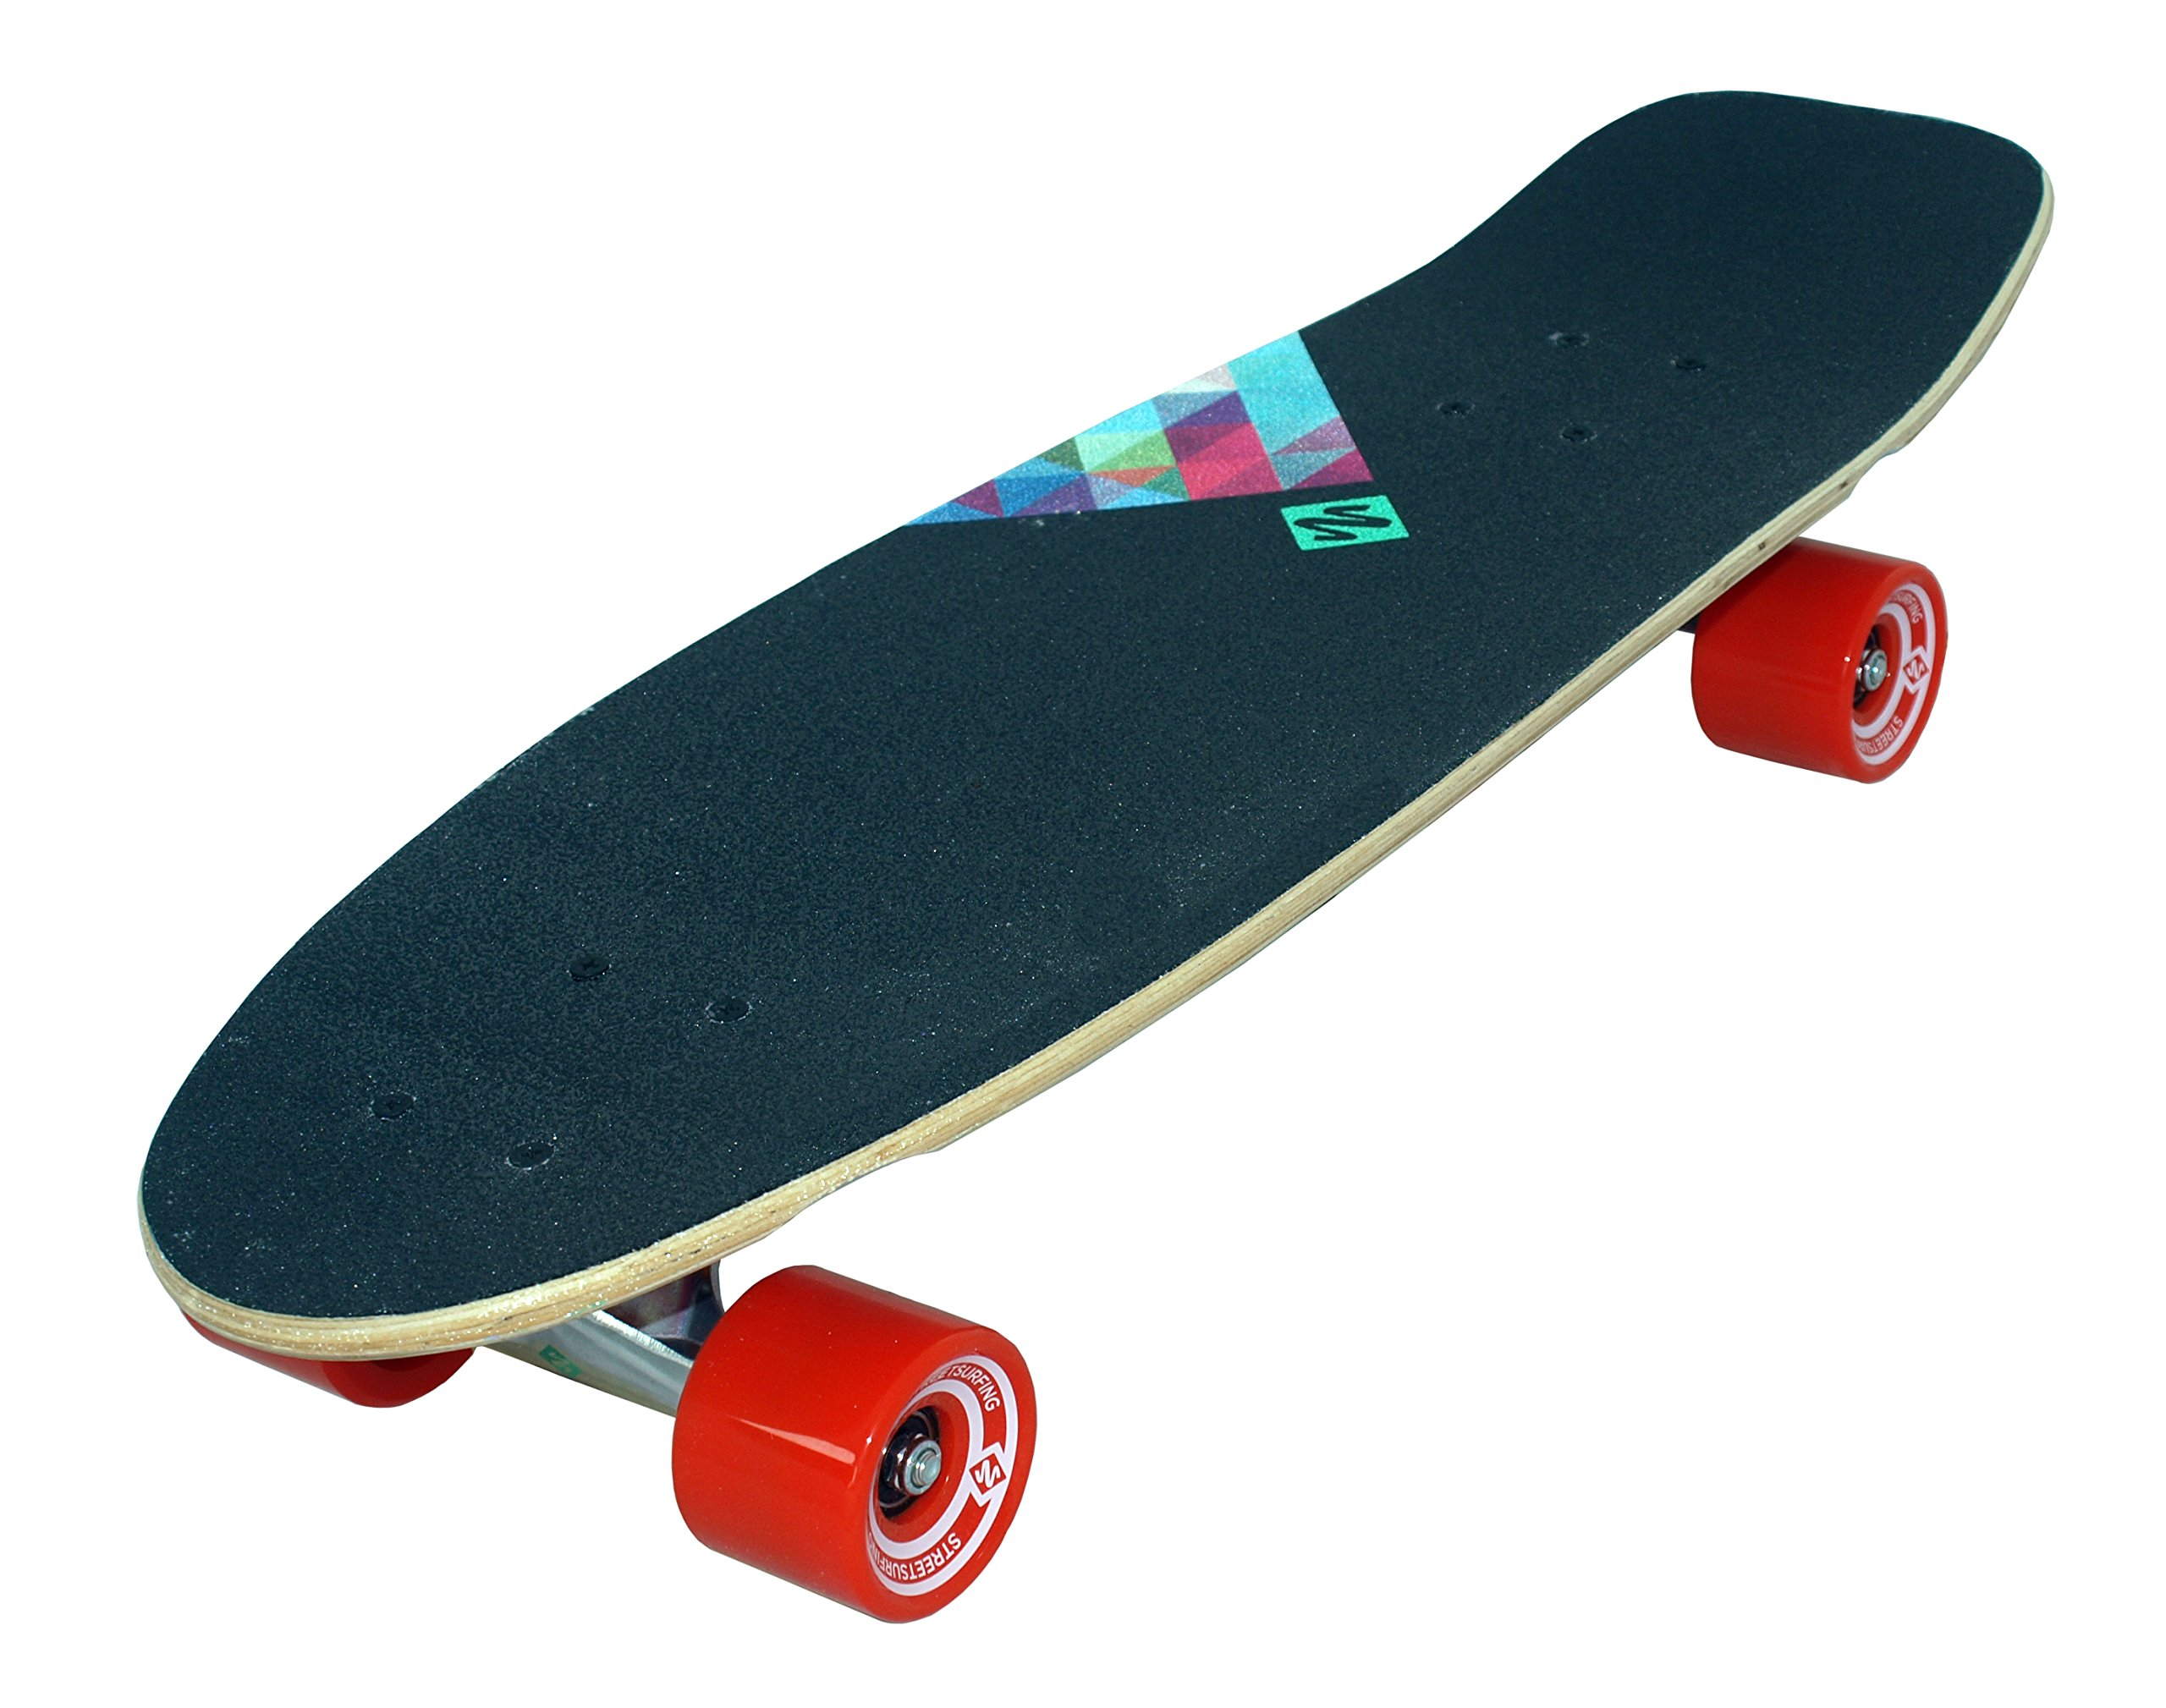 Streetsurfing 500280 ''Cruiser Kicktail - Rocky Mountain Skateboard (28-Inch) by Street Surfing